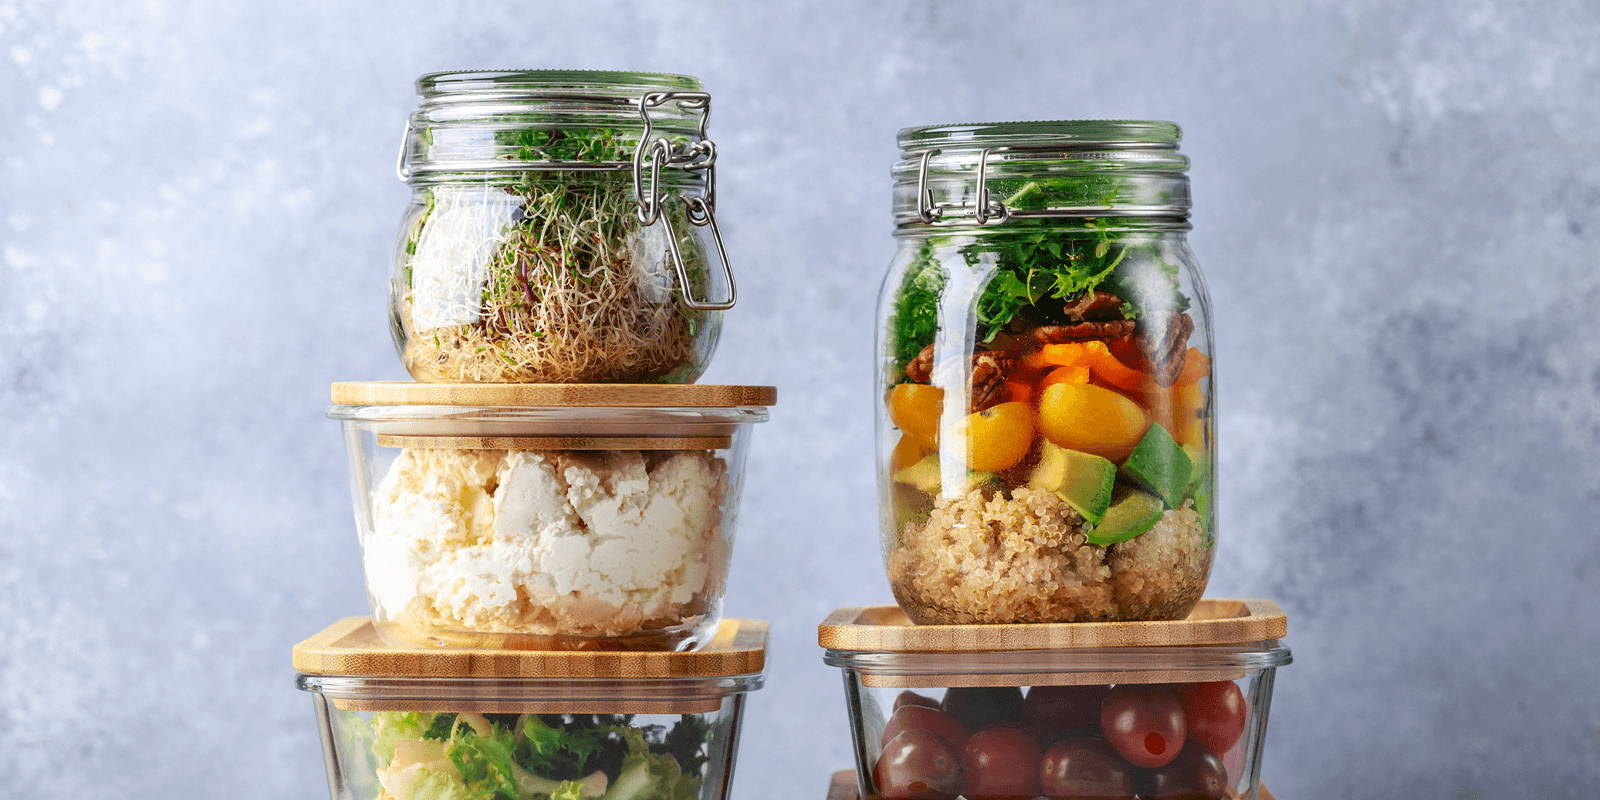 Fresh food in containers.